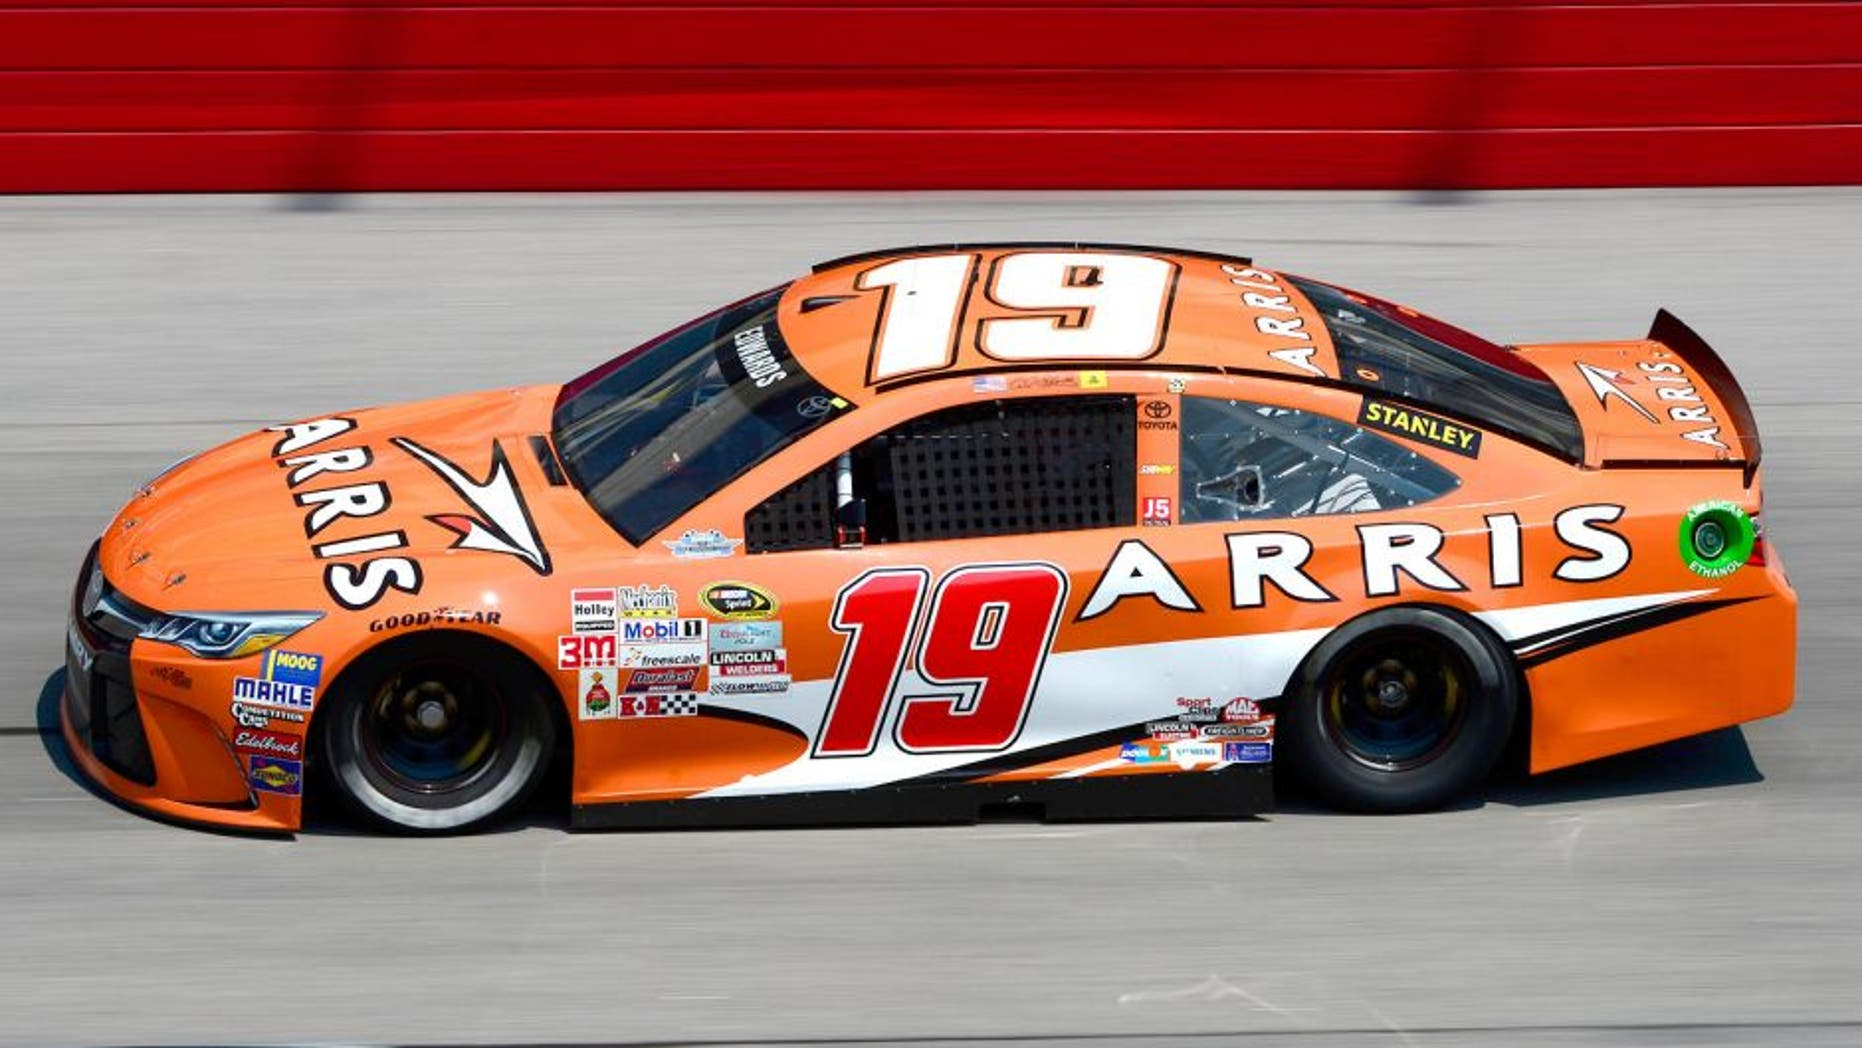 DARLINGTON, SC - SEPTEMBER 04: Carl Edwards, driver of the #19 ARRIS Toyota, practices for the NASCAR Sprint Cup Series Bojangles' Southern 500 at Darlington Raceway on September 4, 2015 in Darlington, South Carolina. (Photo by Robert Laberge/NASCAR via Getty Images)